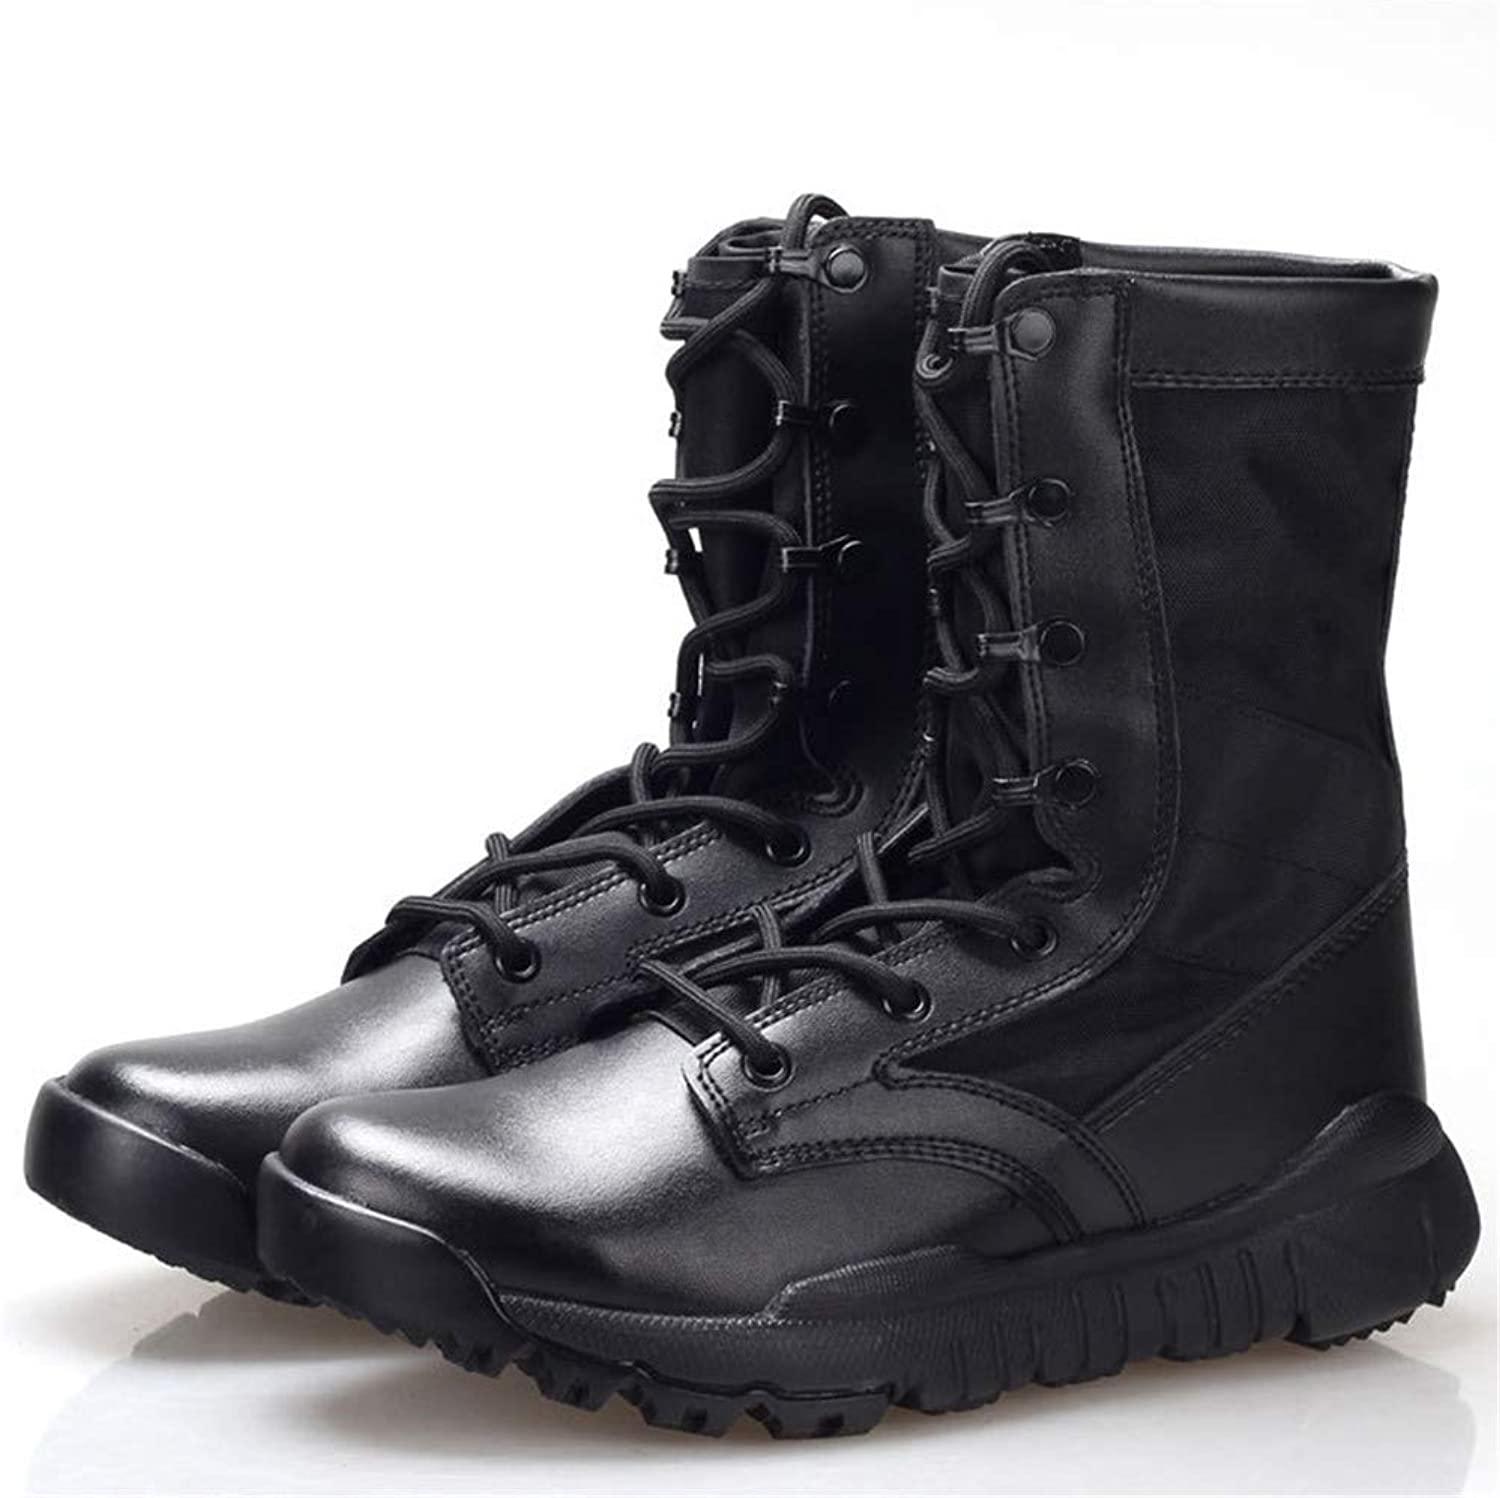 YYIN Men's Boots Ultralight Combat Boots Tactical Boots Non-Slip Wear Resistant Outdoor Comfortable Unisex Leather Boots Work Safety Boots